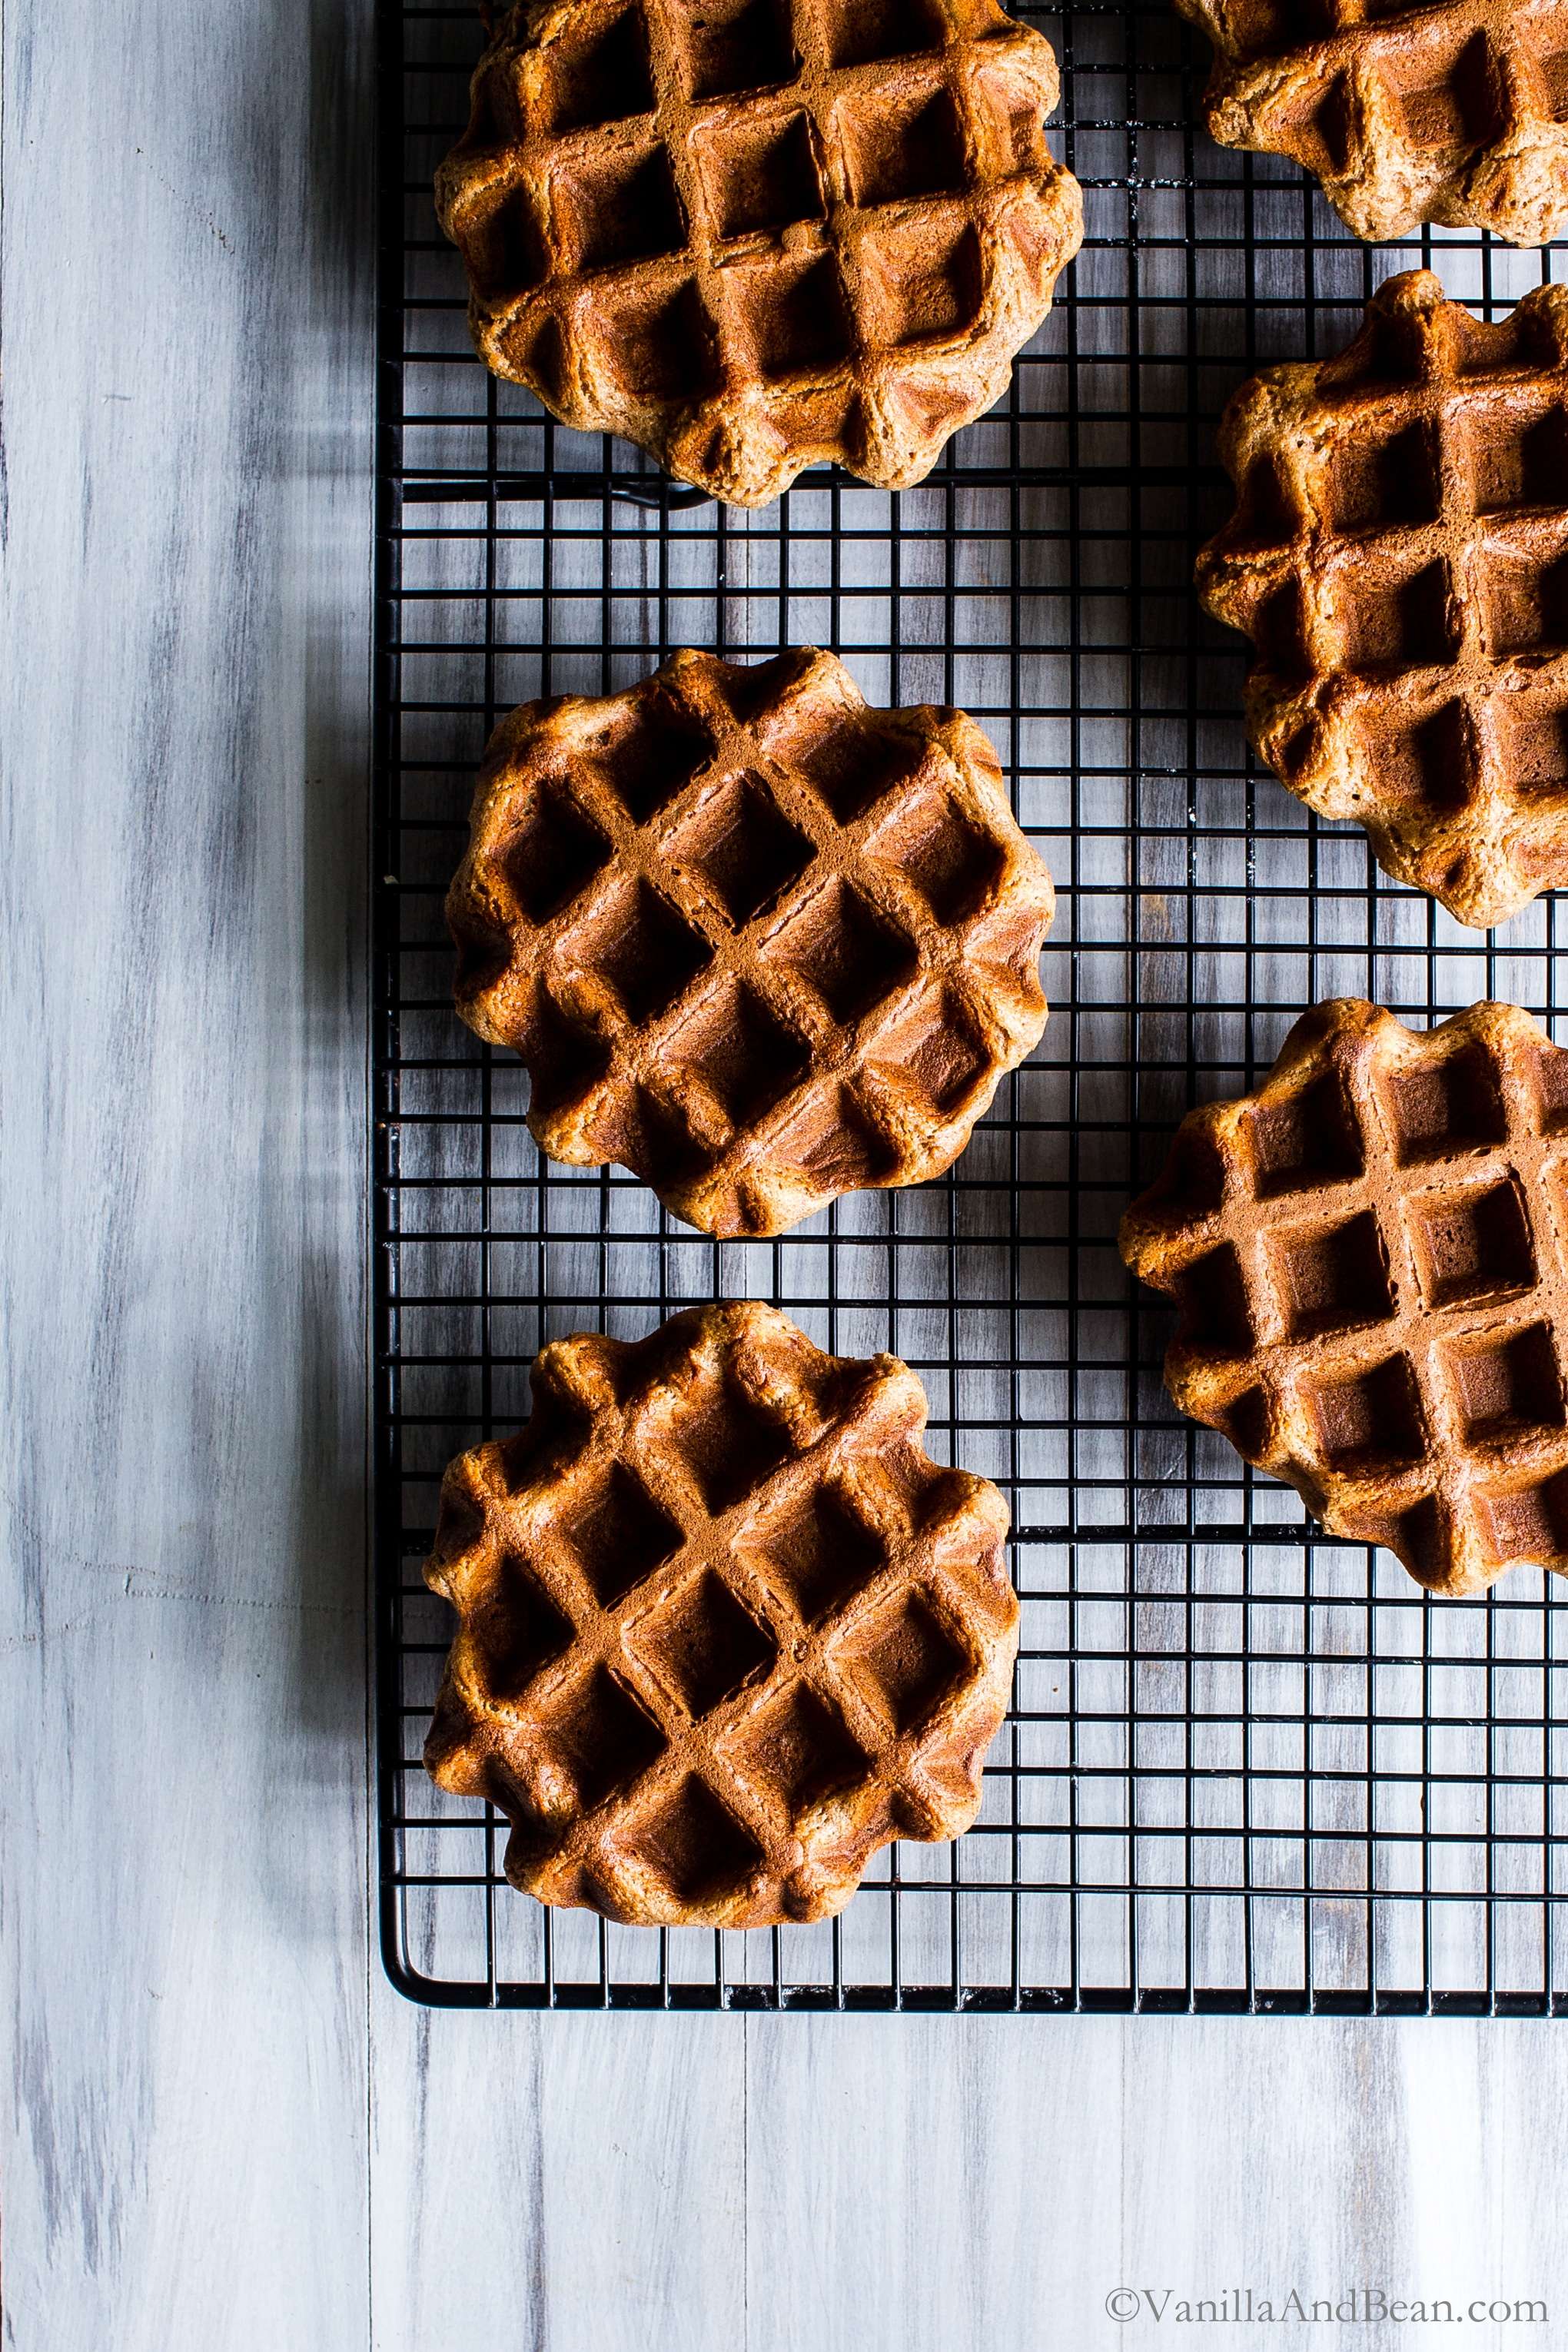 Easy weekend mornings or pull from the freezer weekday ready oatmeal waffles? Yes please! Banana-Pecan Oat Waffles are whipped up in the blender or food processor and are freezer friendly. Hooray! #vegan #Eggfree #DairyFree + #glutenfree